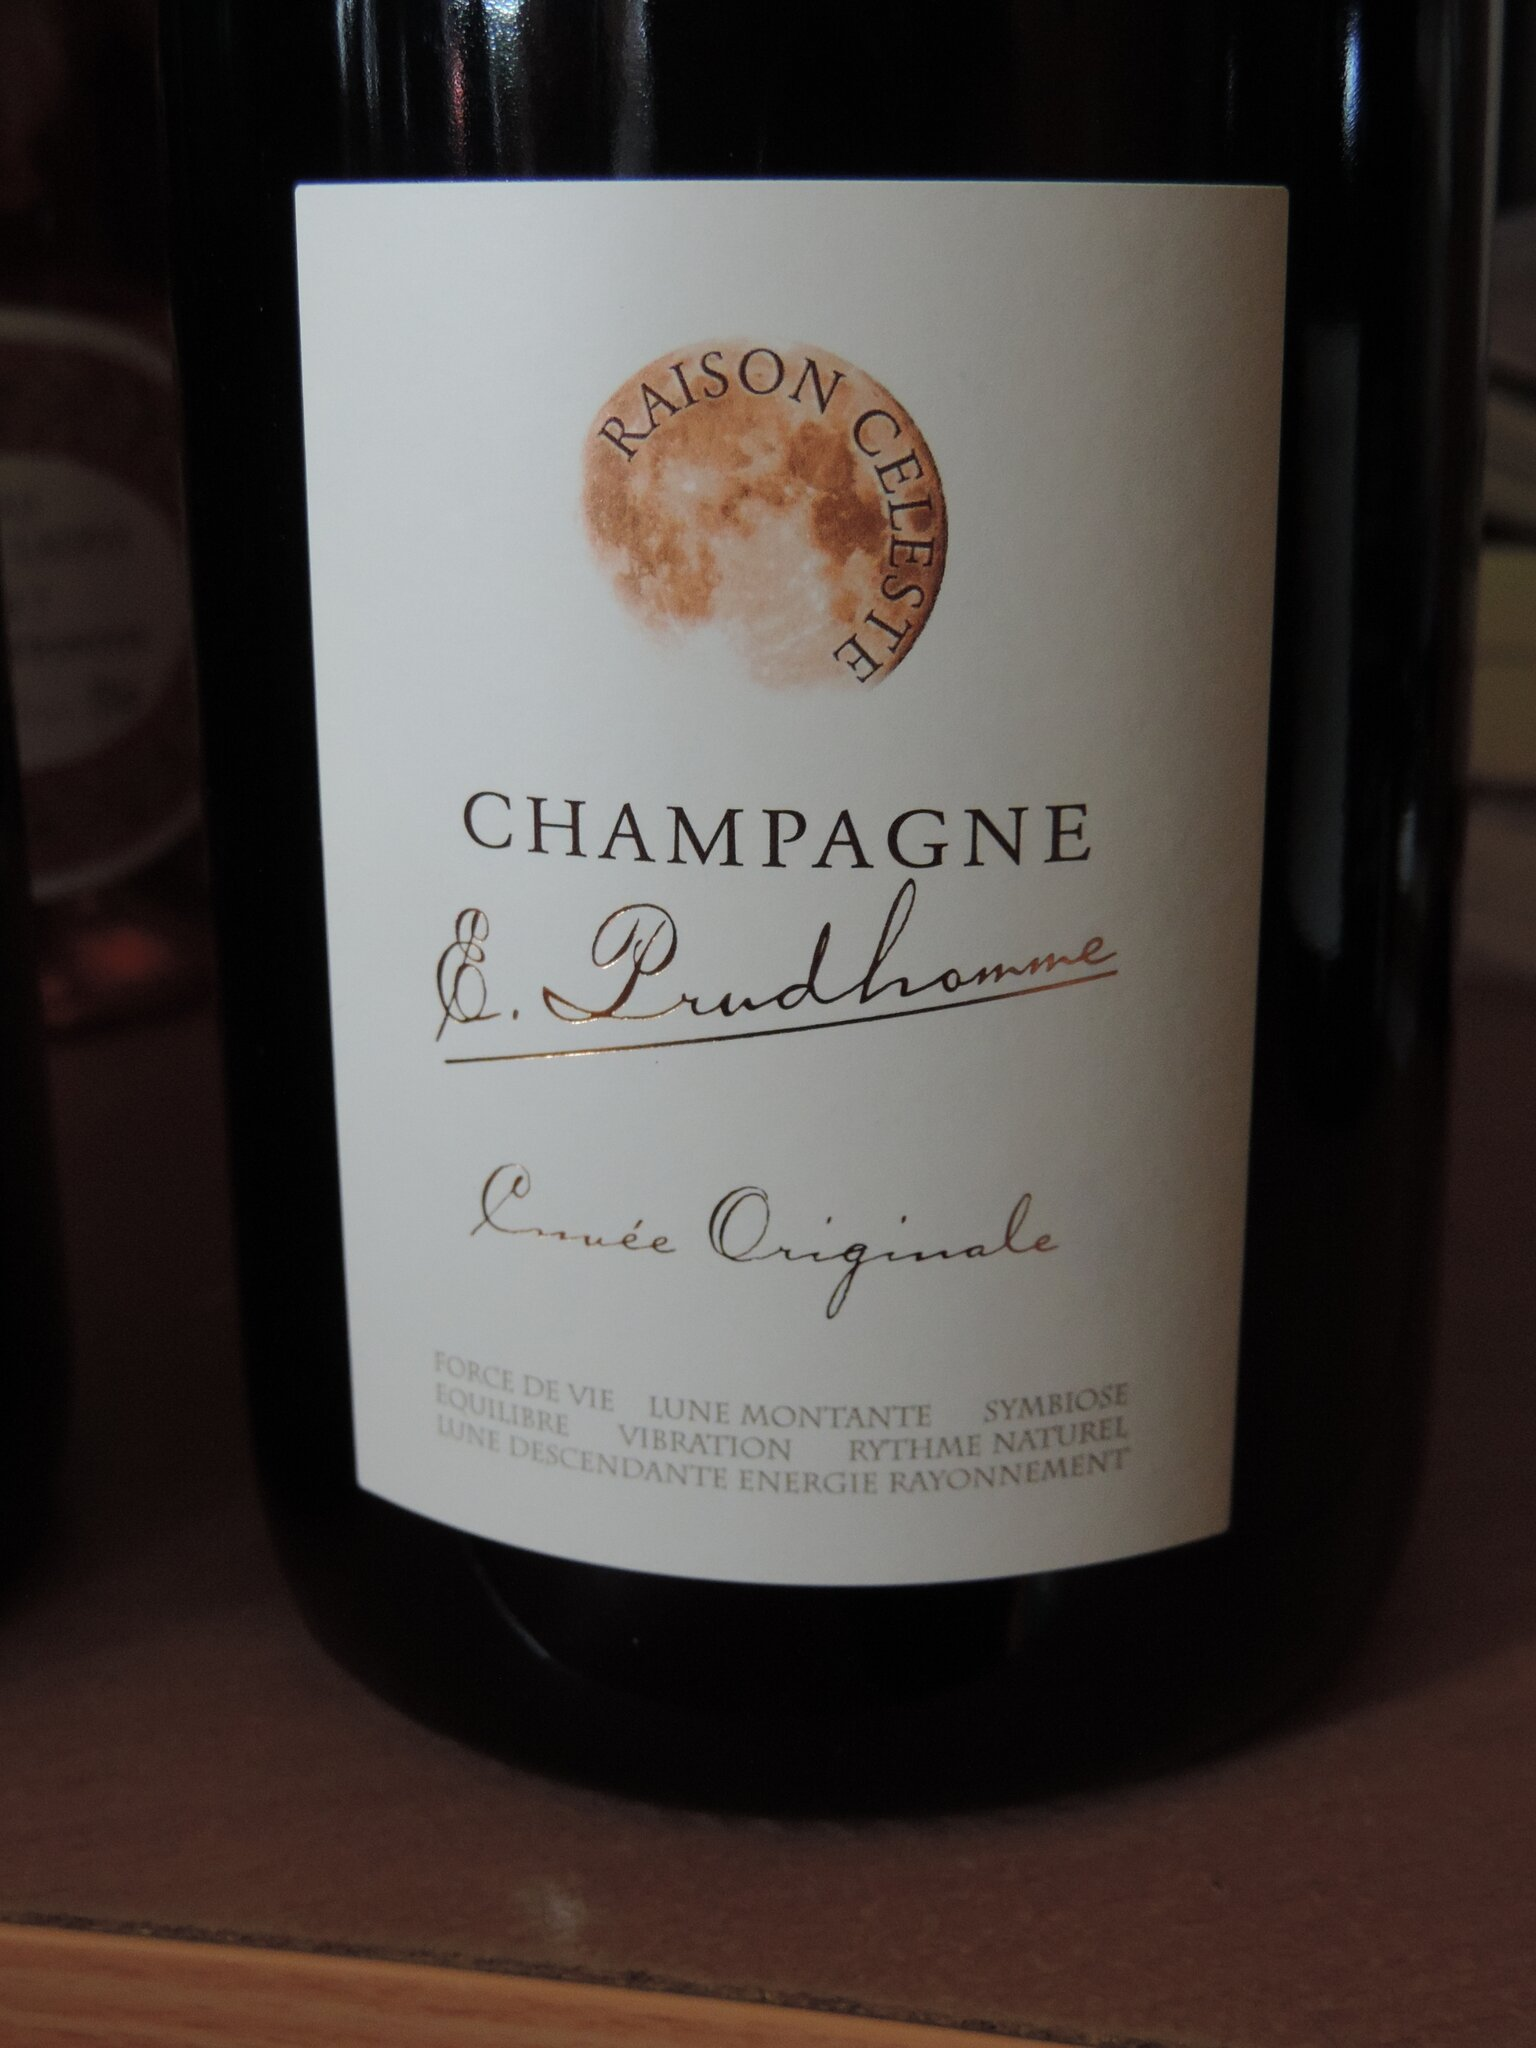 E.Prudhomme champagne brut nature